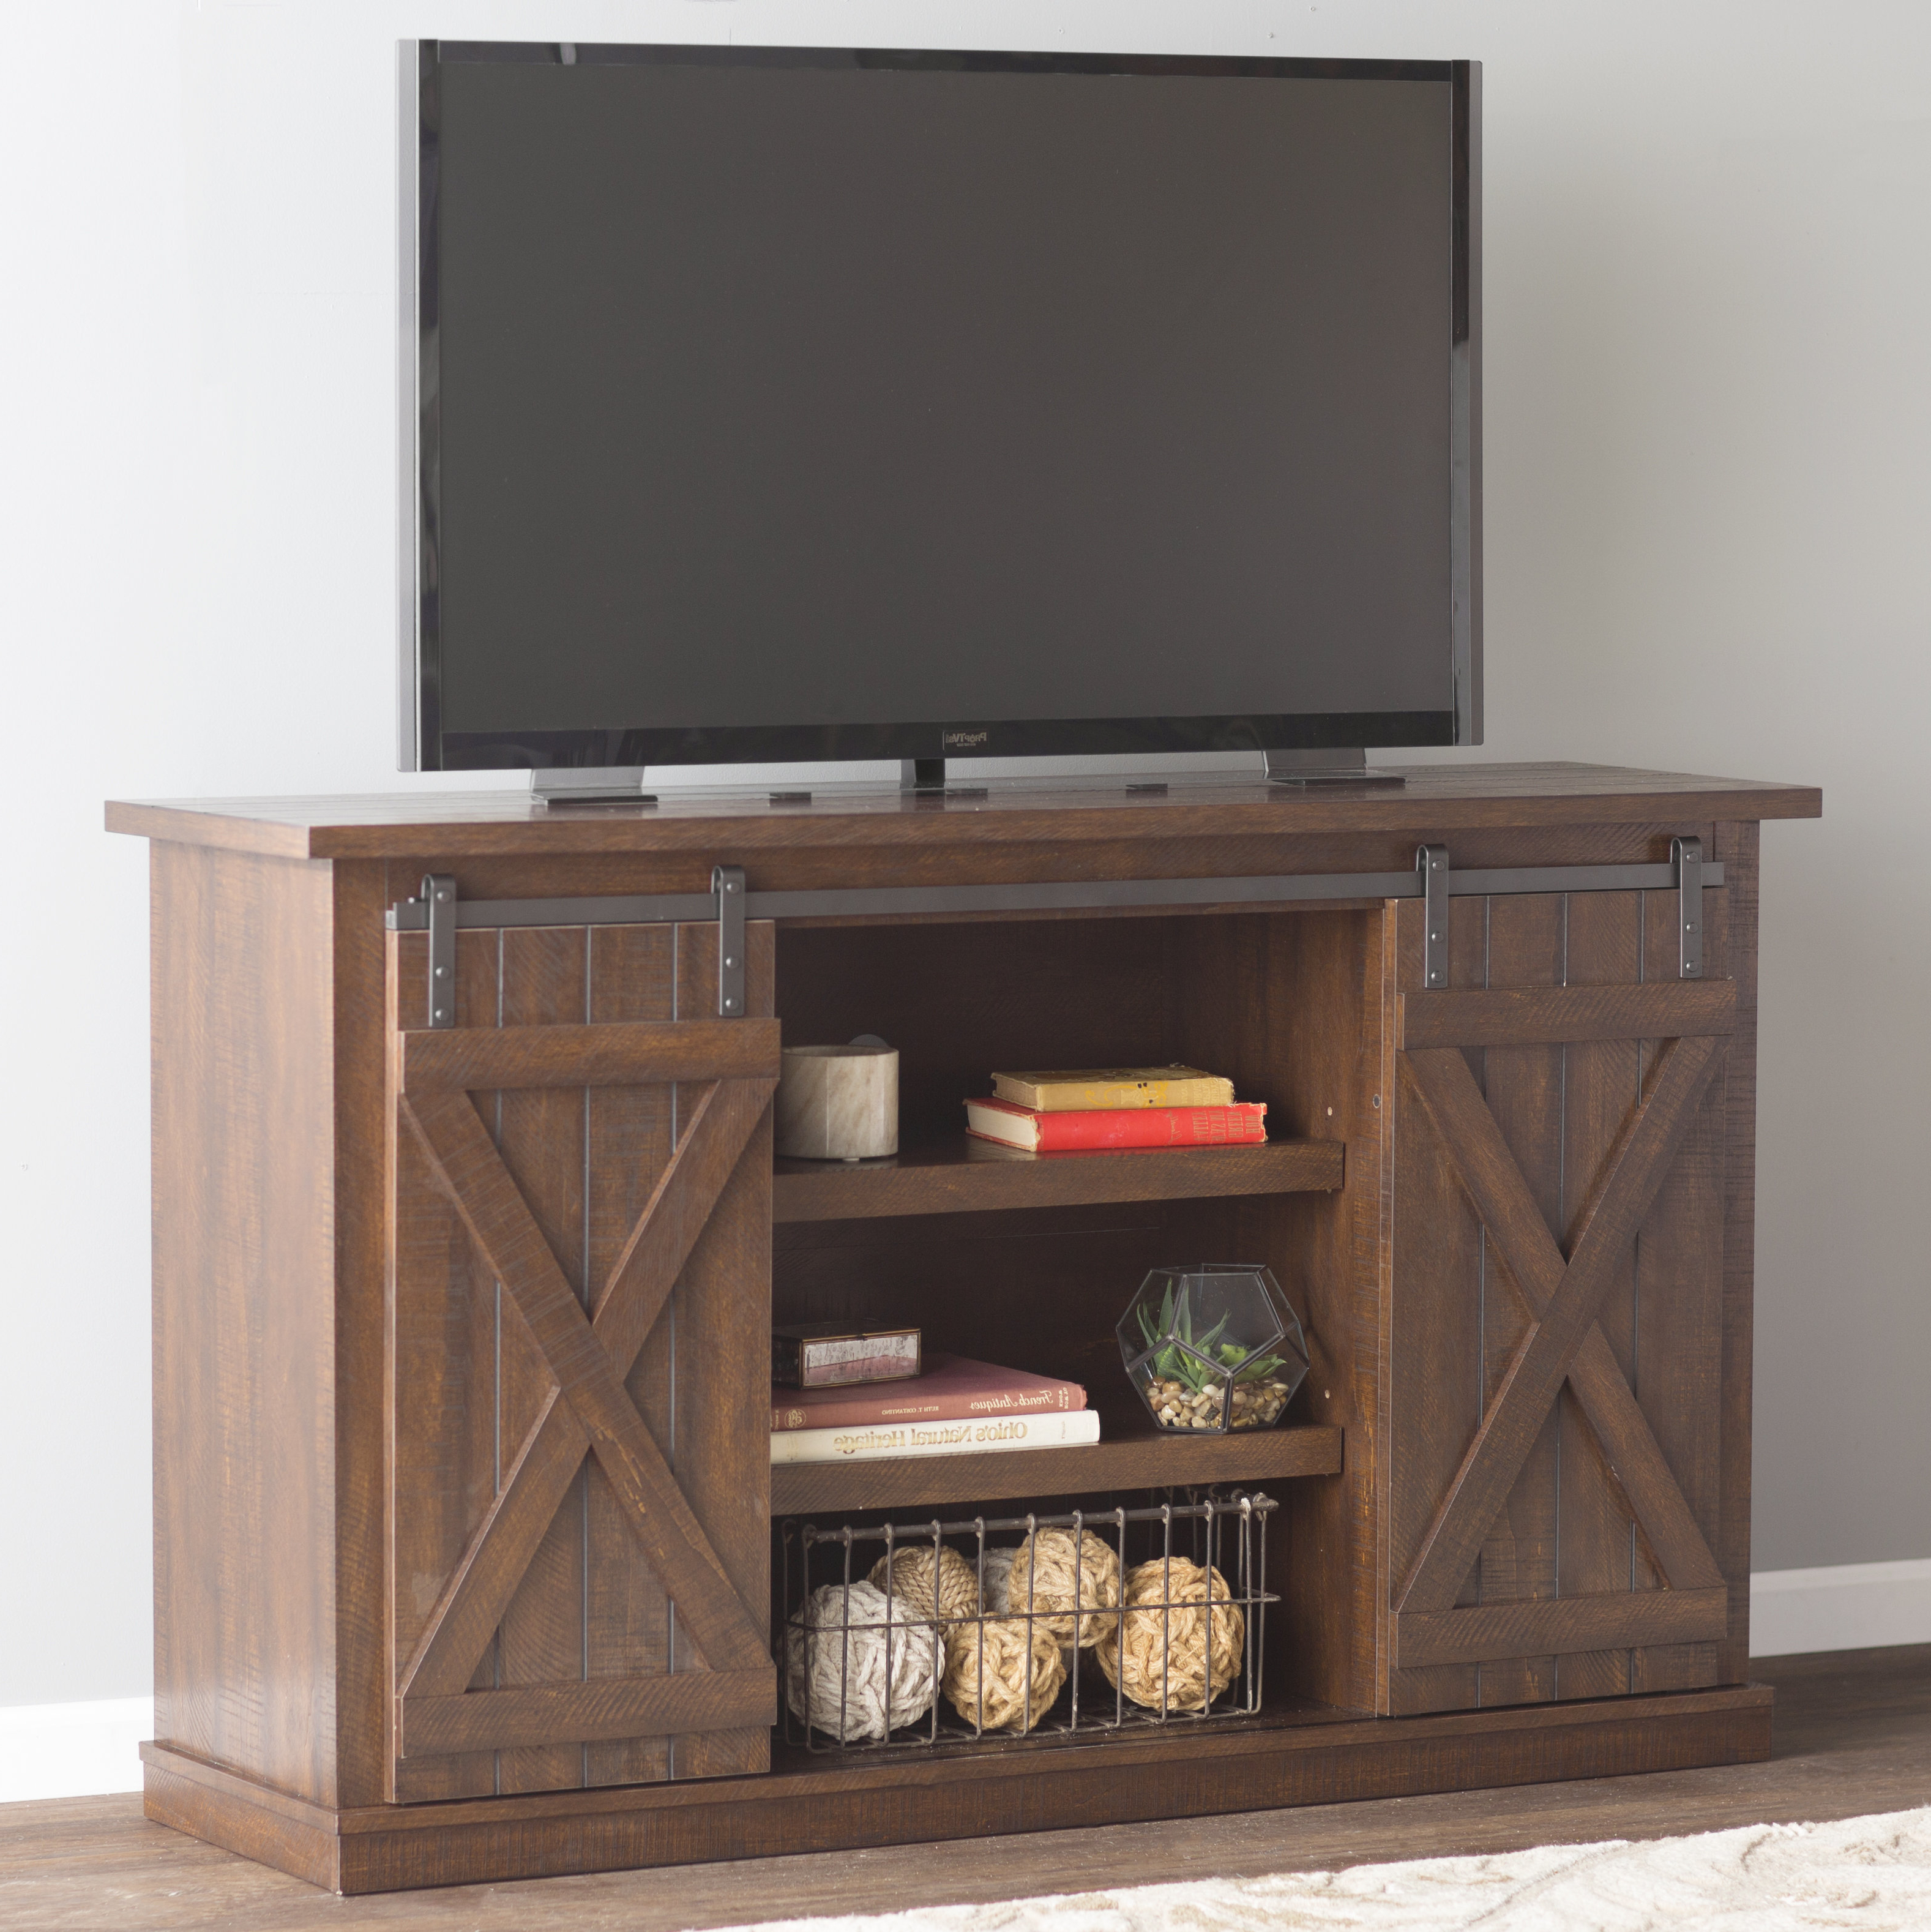 Loon Peak | Wayfair Throughout Marvin Rustic Natural 60 Inch Tv Stands (View 14 of 20)